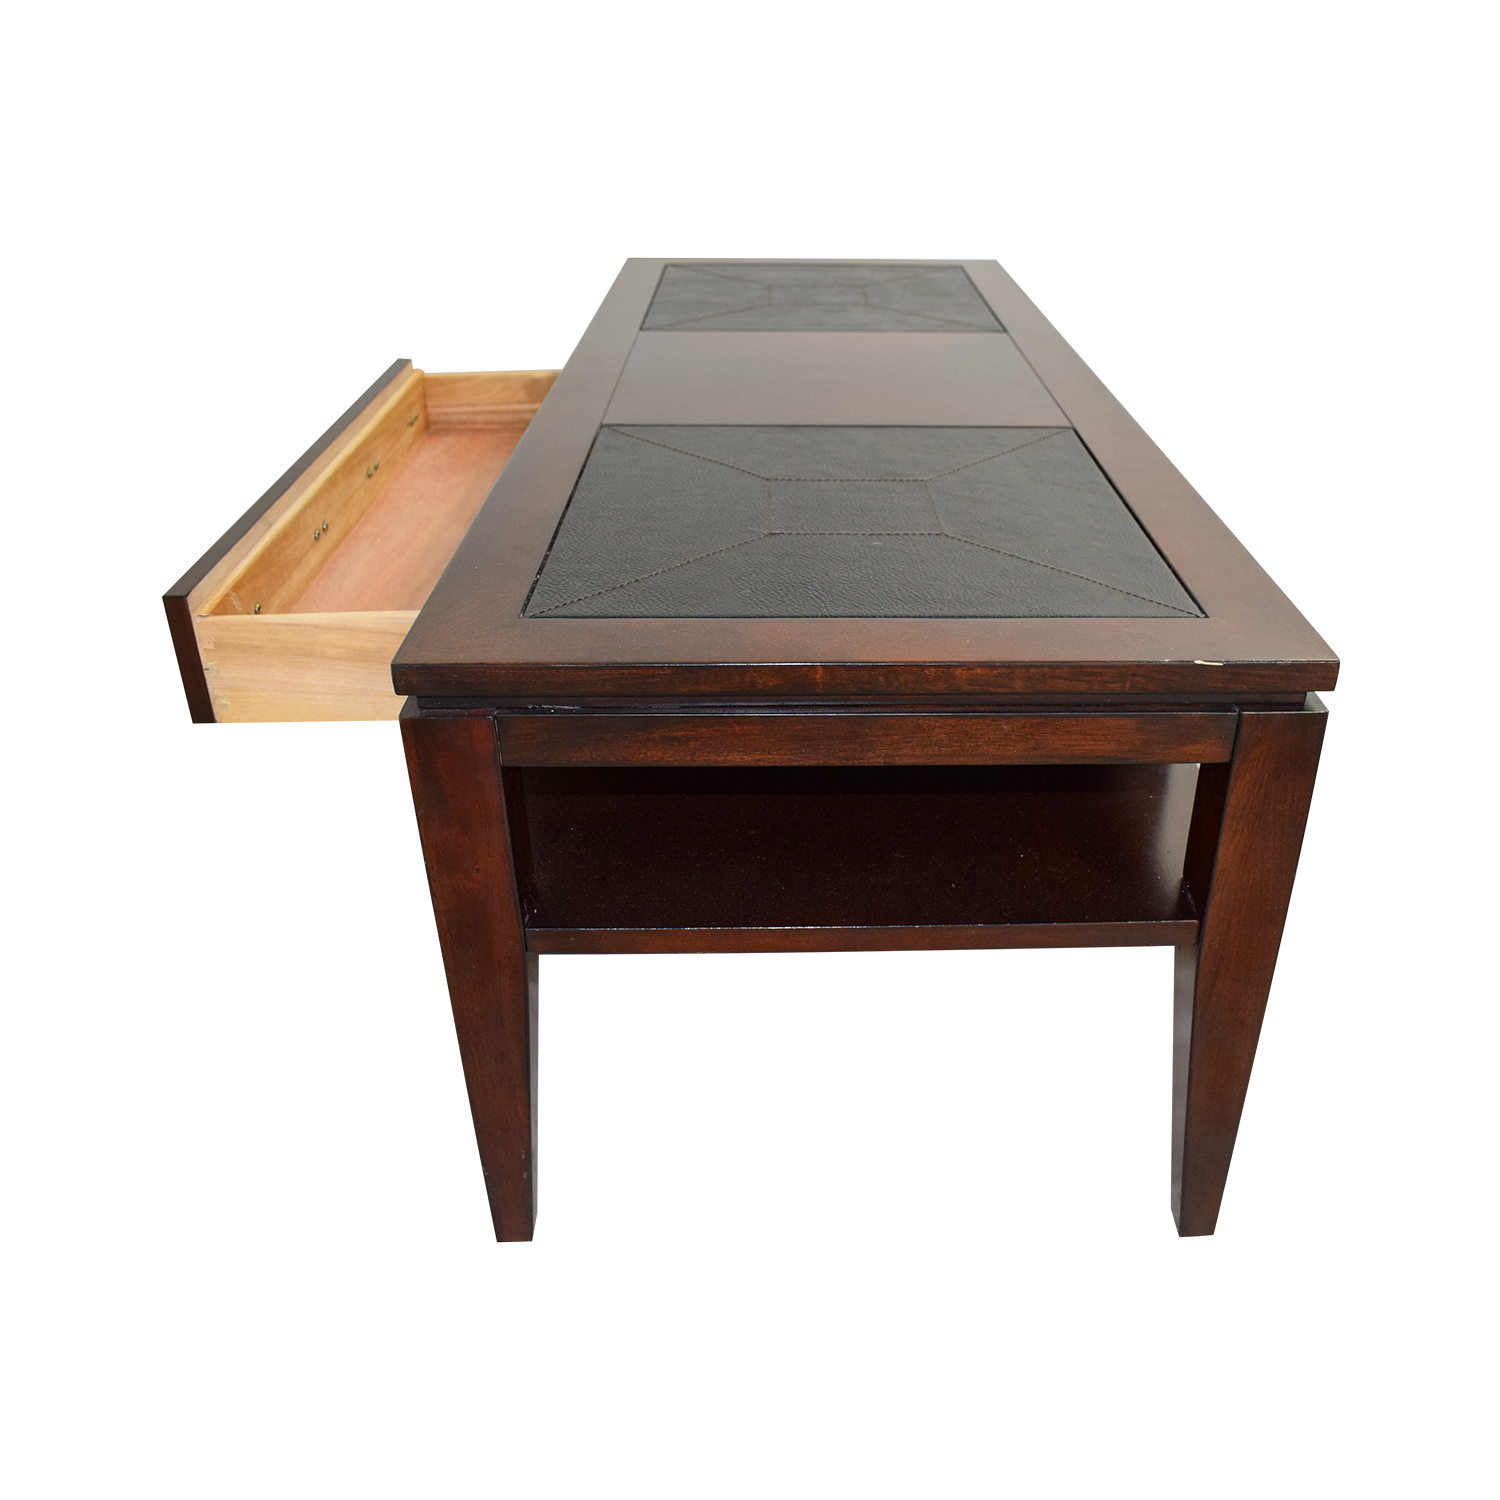 Raymour & Flanigan Raymour & Flanigan Single Drawer Coffee Table